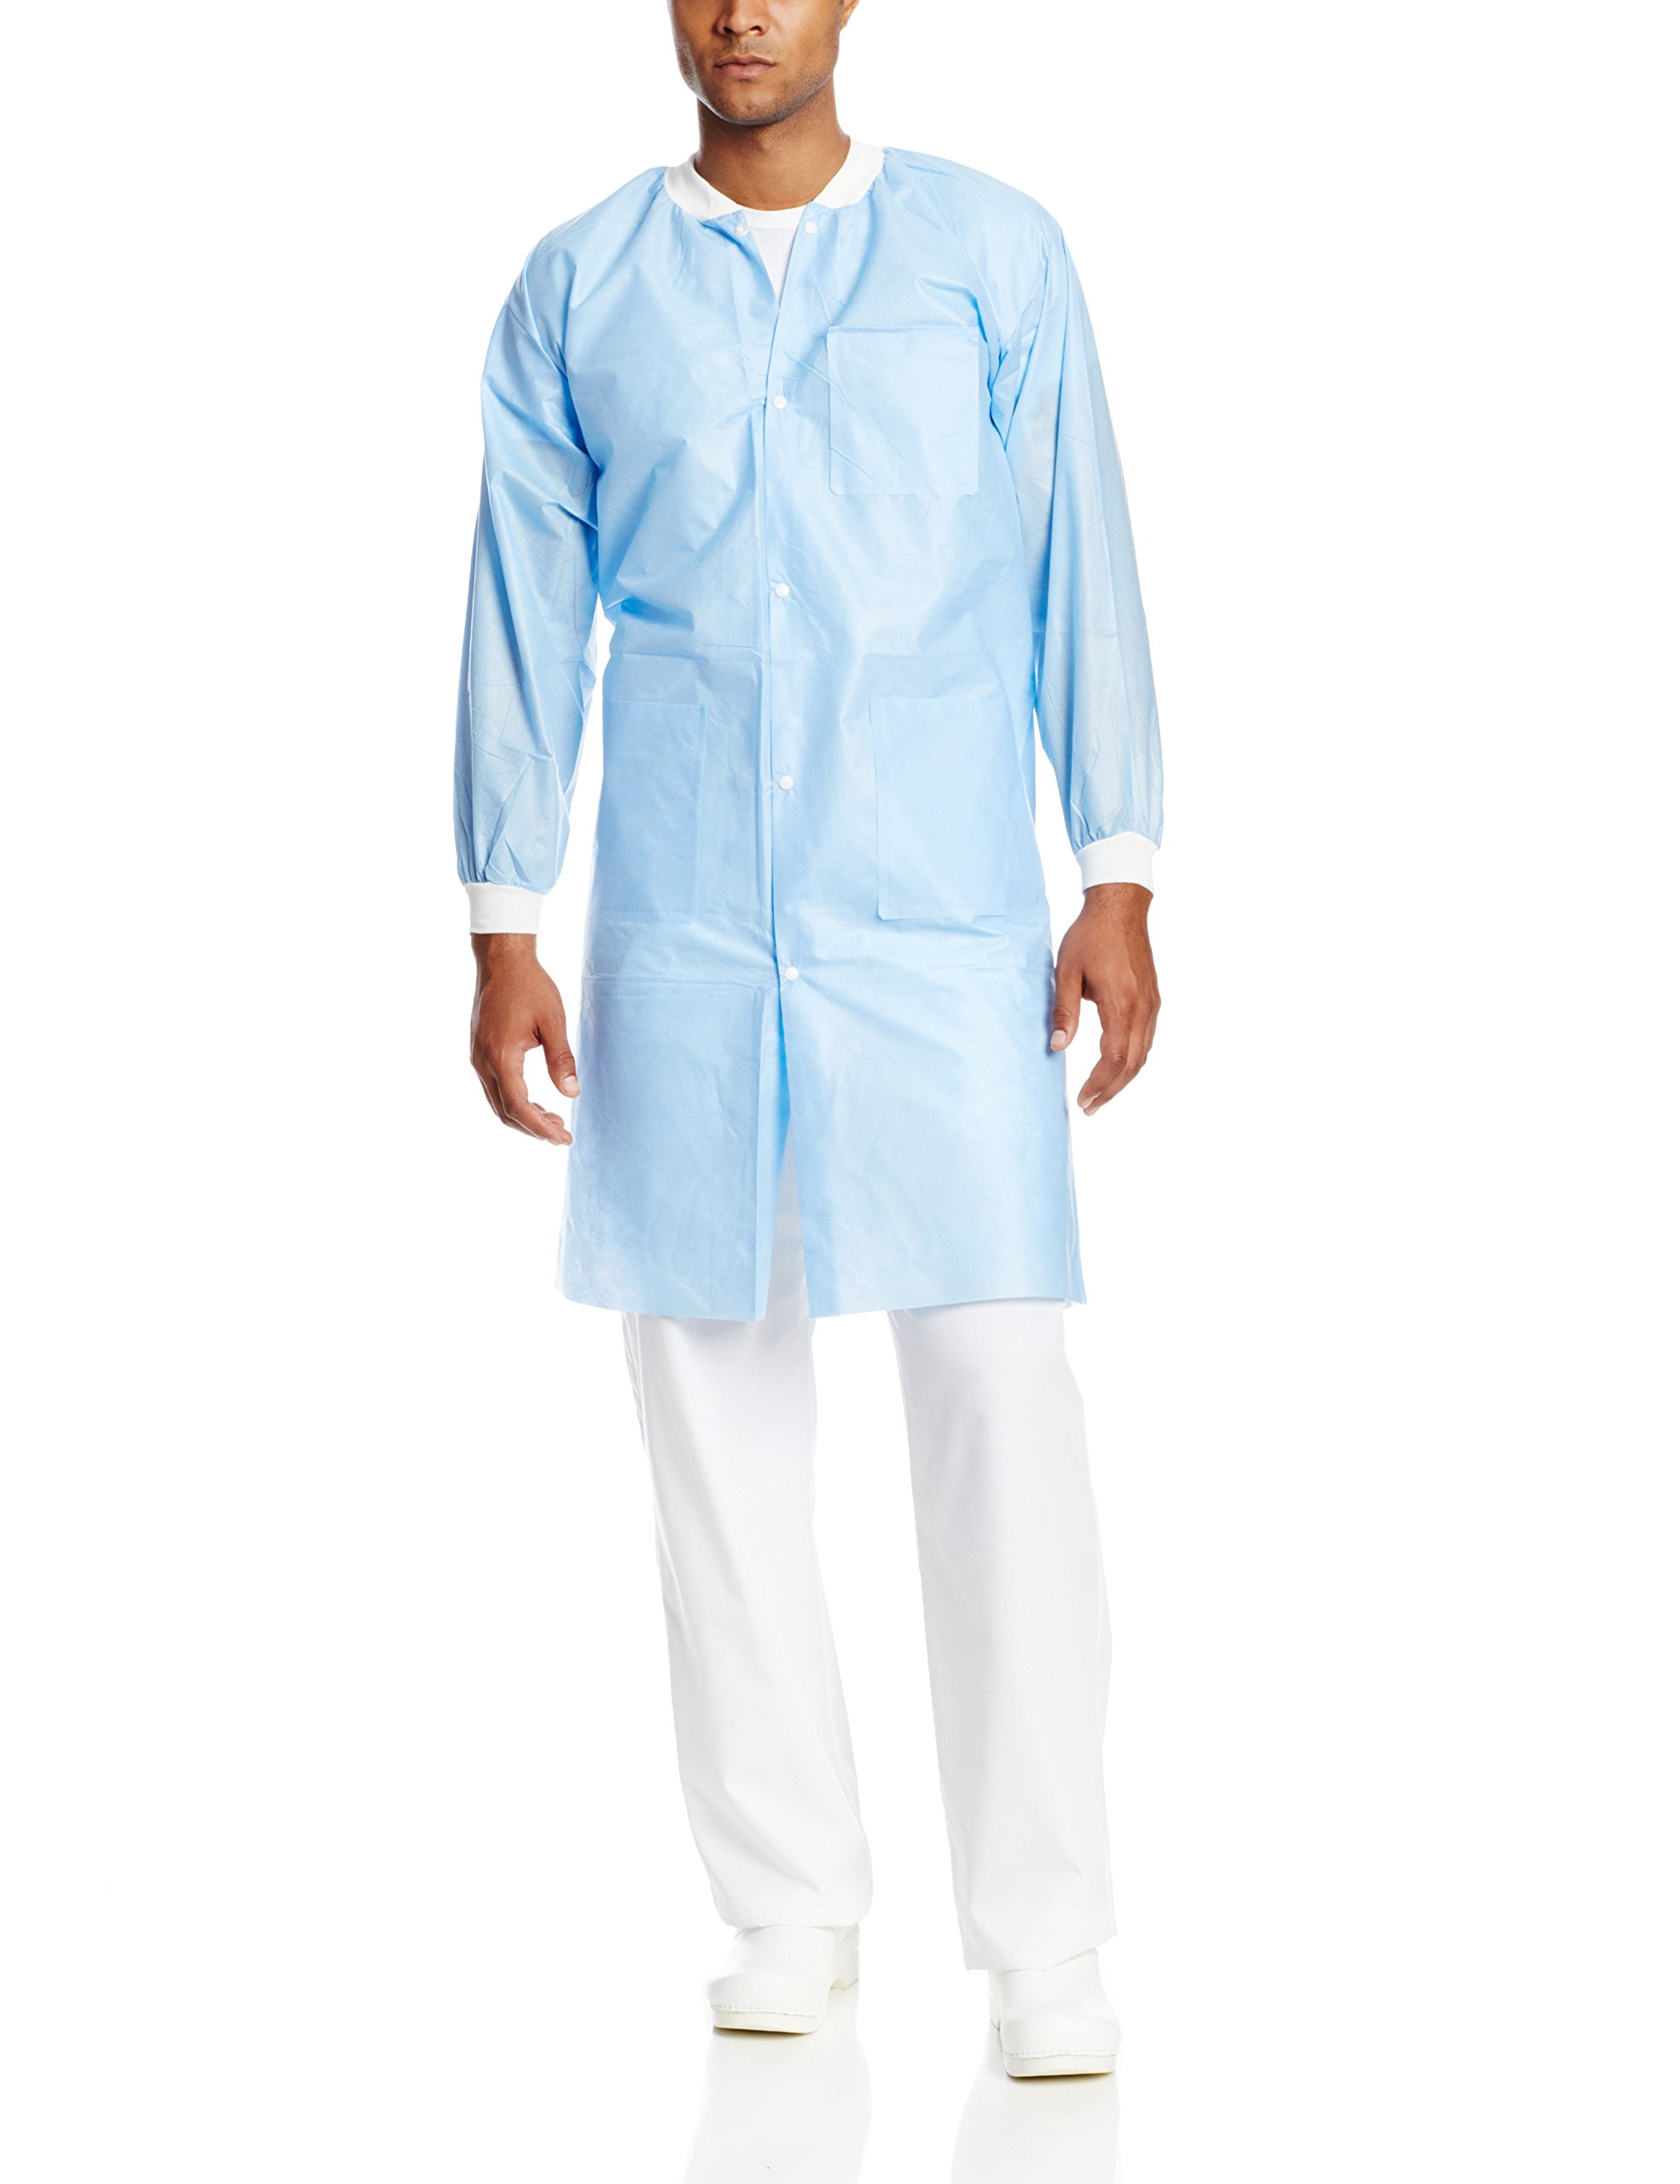 ValuMax 3660MBXL Extra-Safe, Wrinkle-Free, Noble Looking Disposable SMS Knee Length Lab Coat, Medical Blue, XL, Pack of 10